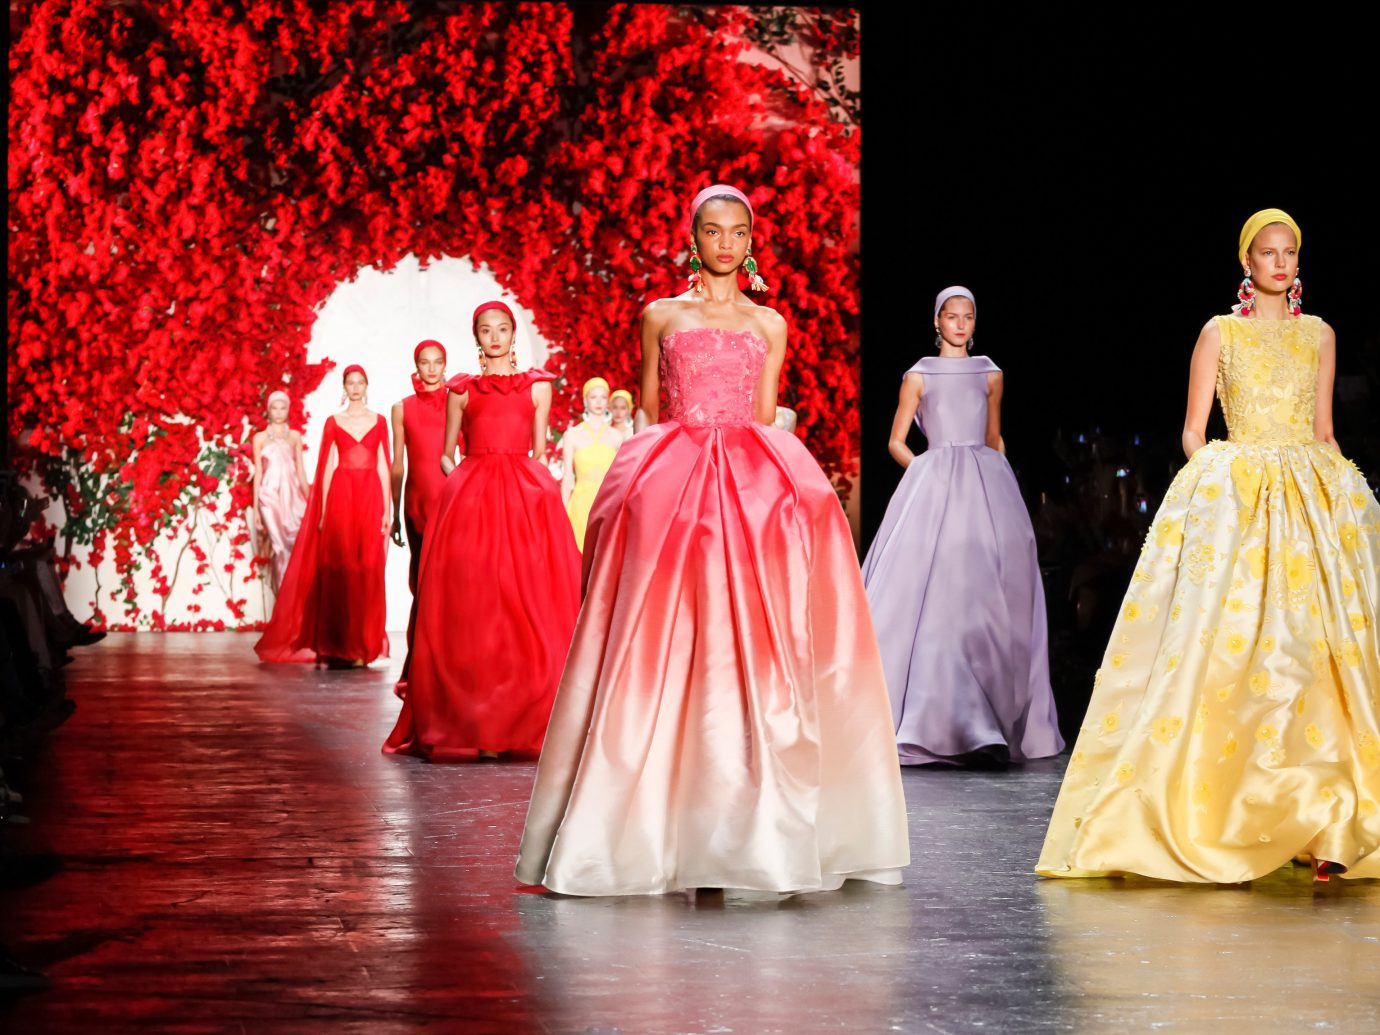 Arts + Culture color Sport indoor performing arts red dance fashion performance art Entertainment dancer quinceañera dress gown musical theatre sports dressed